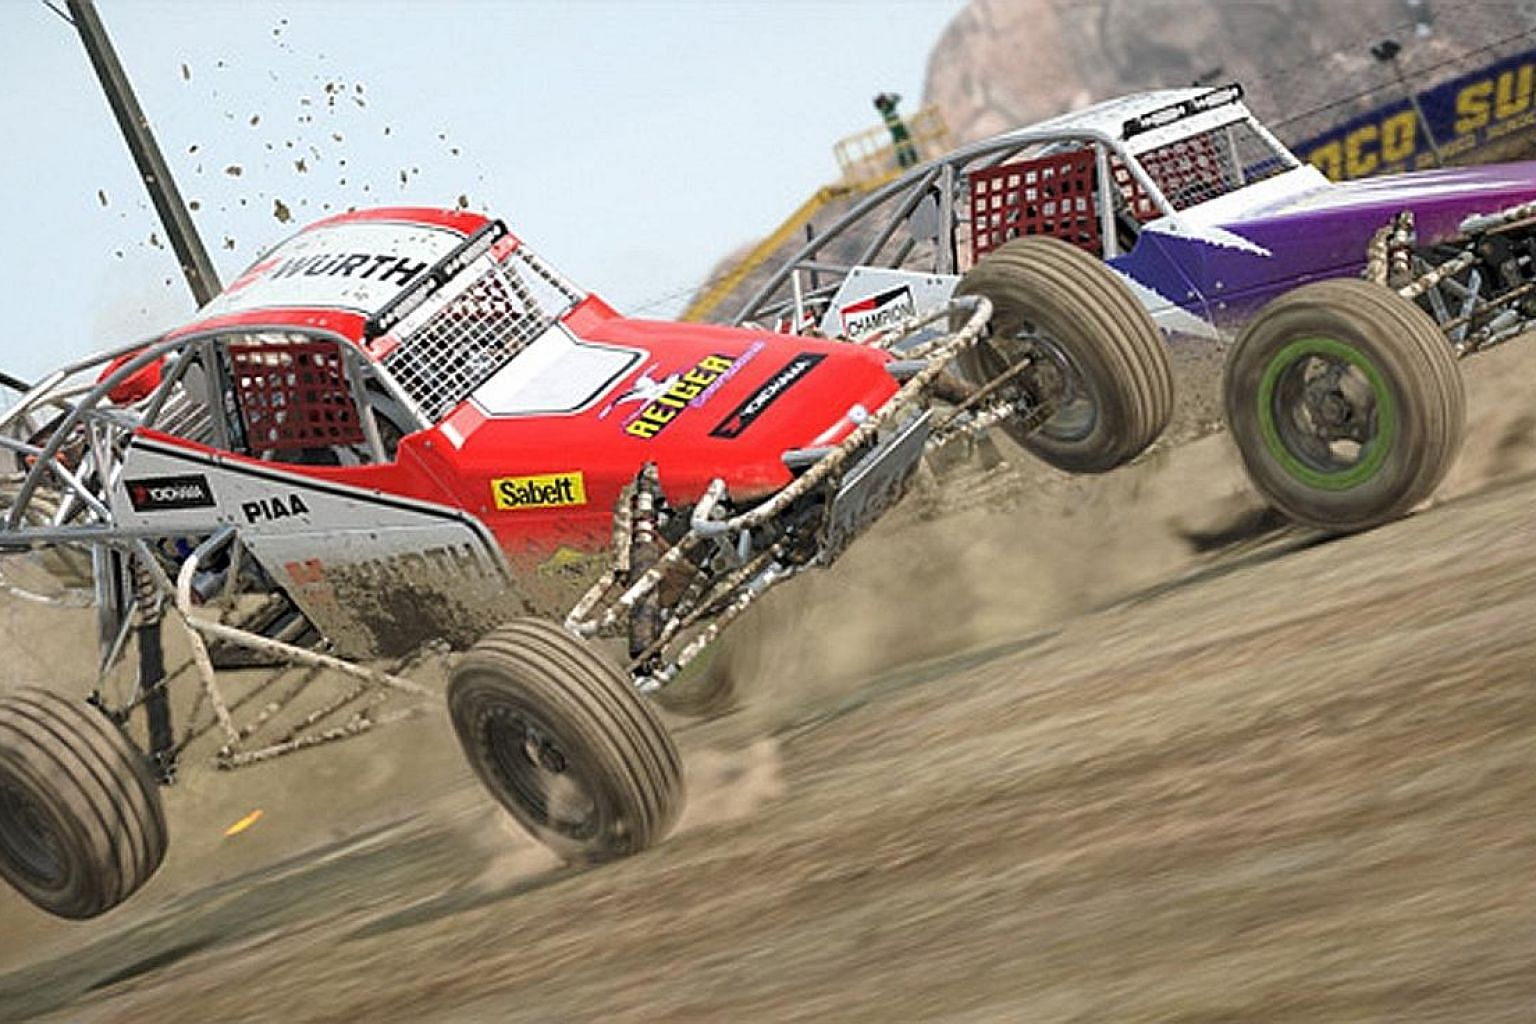 Dirt 4 has five rally locations - Australia, Spain, the United States, Sweden and Wales - which boast diverse looks and challenges.